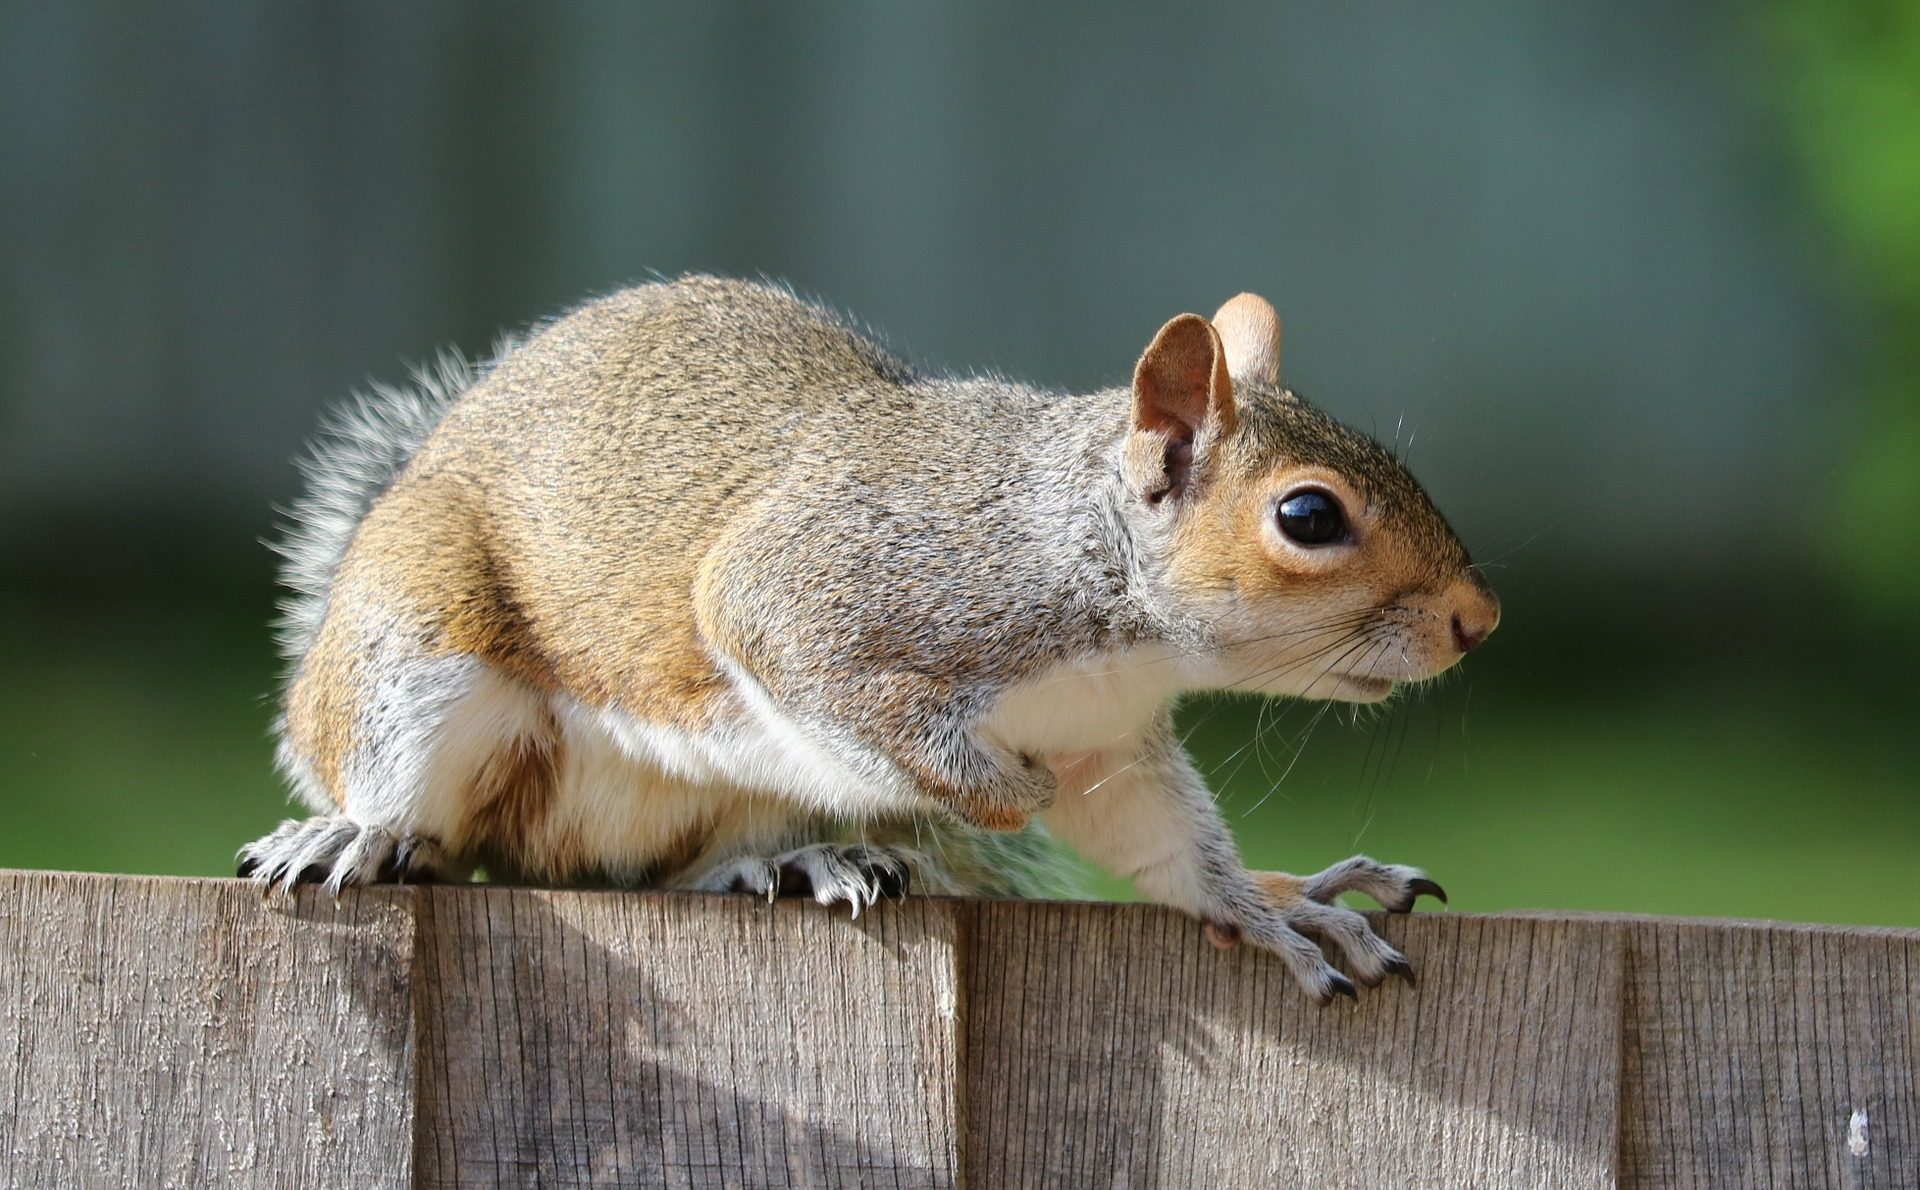 Check your cars!! Squirrels might use your engines for storage